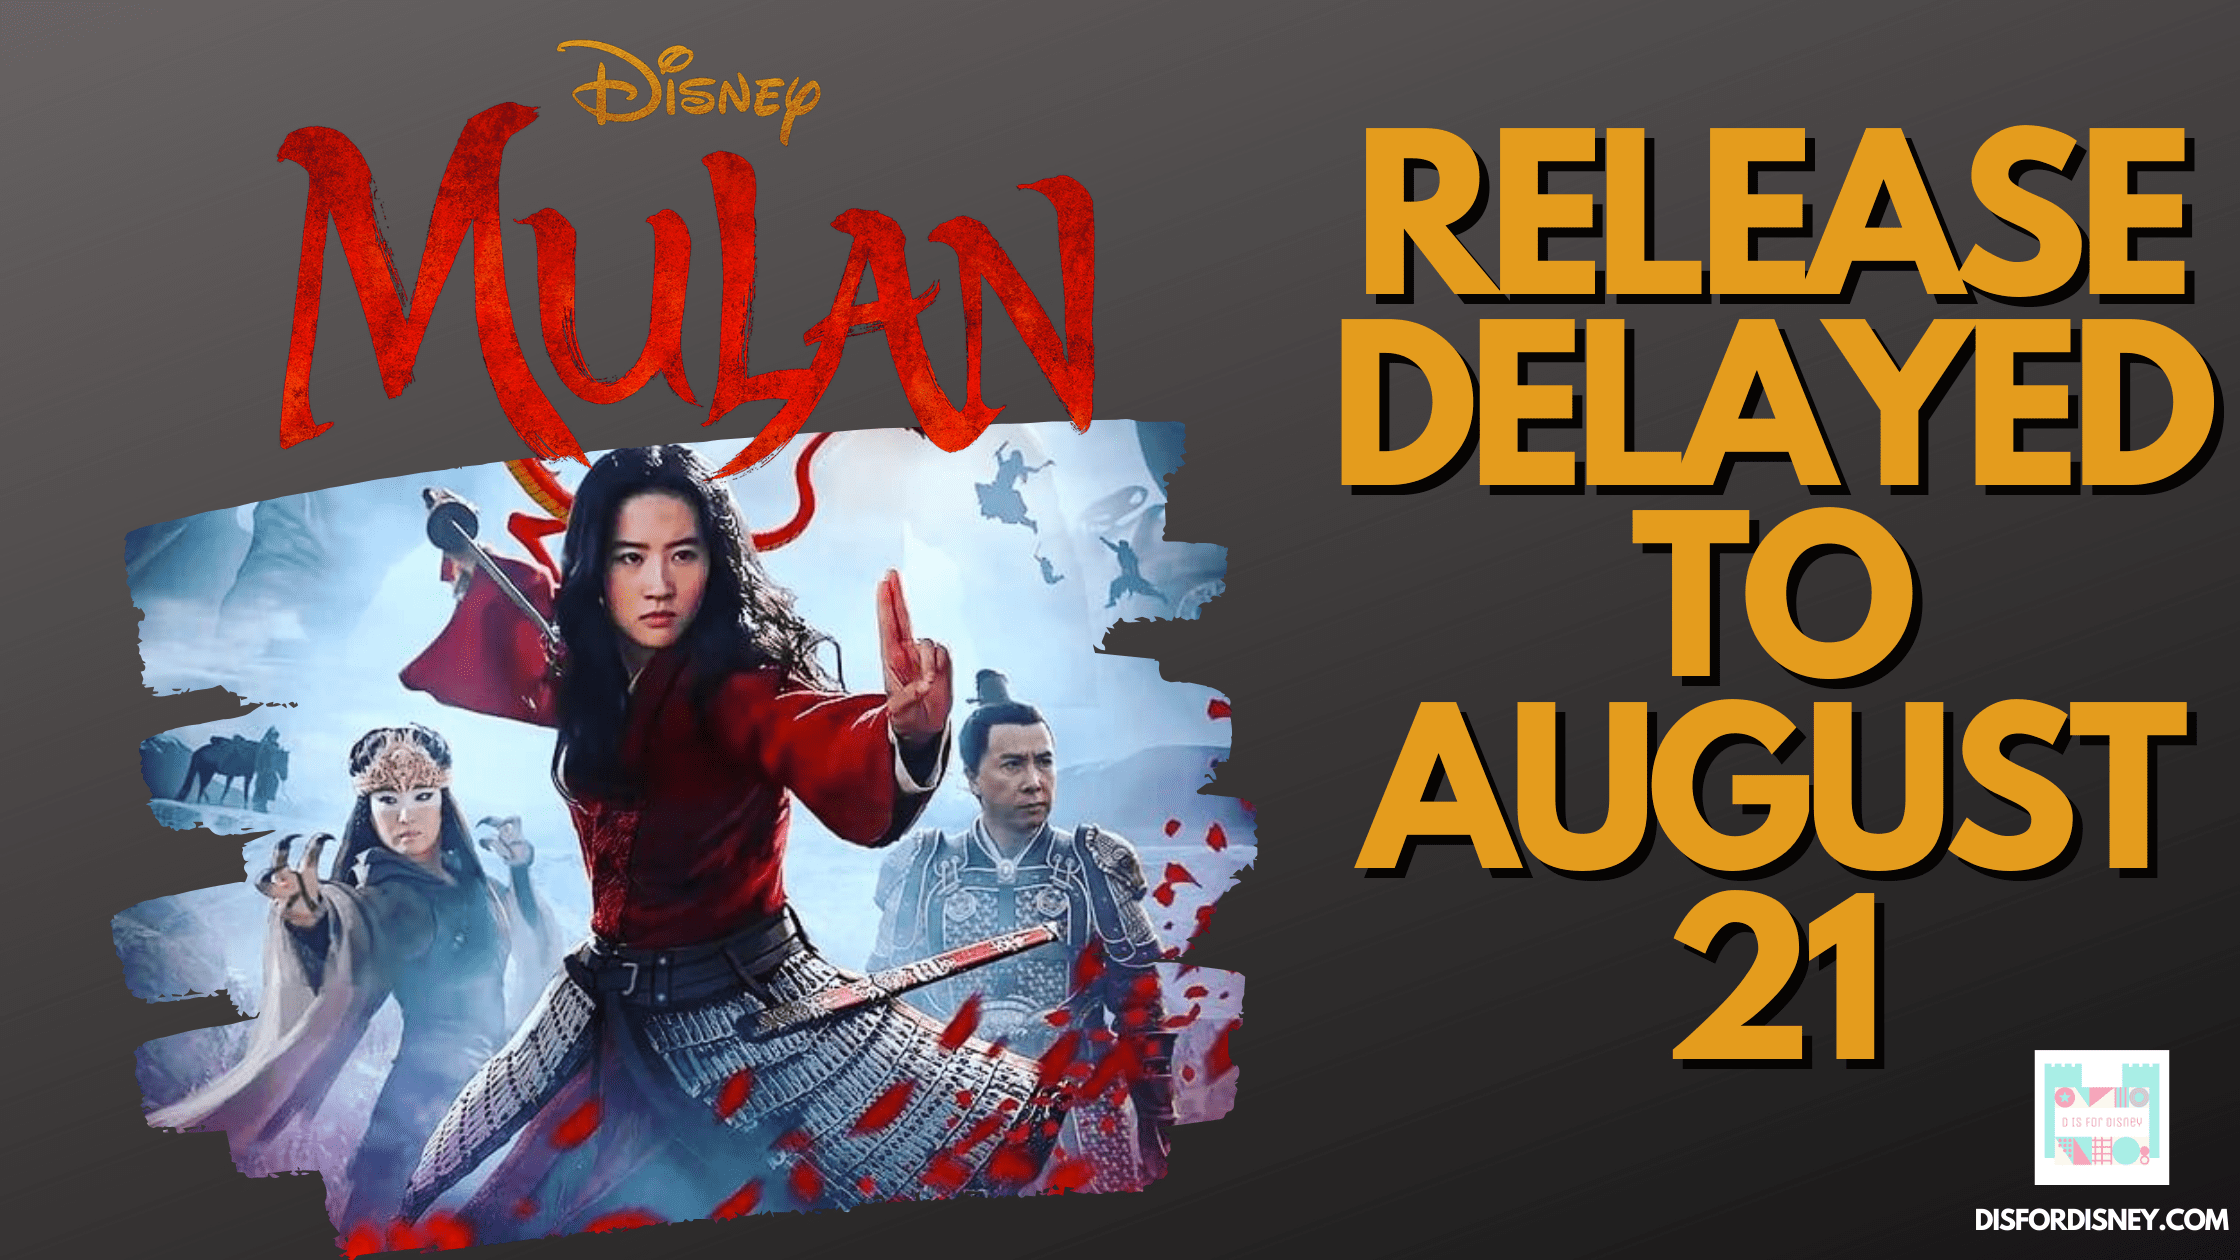 Mulan-Release-Postponed-Delayed-to-August-21-2020